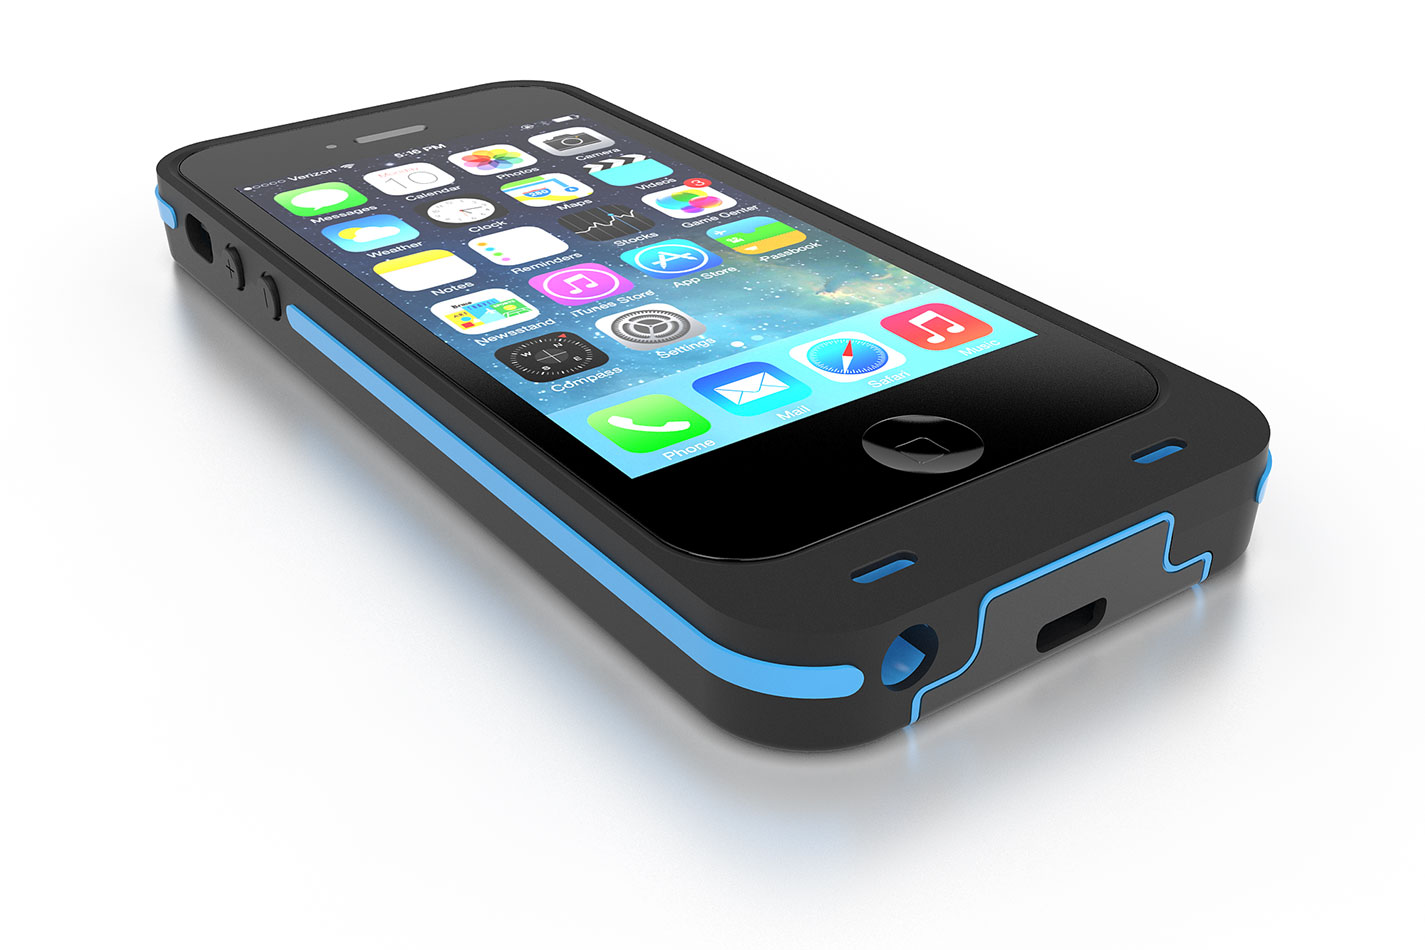 buy online a4d84 e8bc7 iPhone 5/5s Wireless Charging Case | Dog & Bone Cases